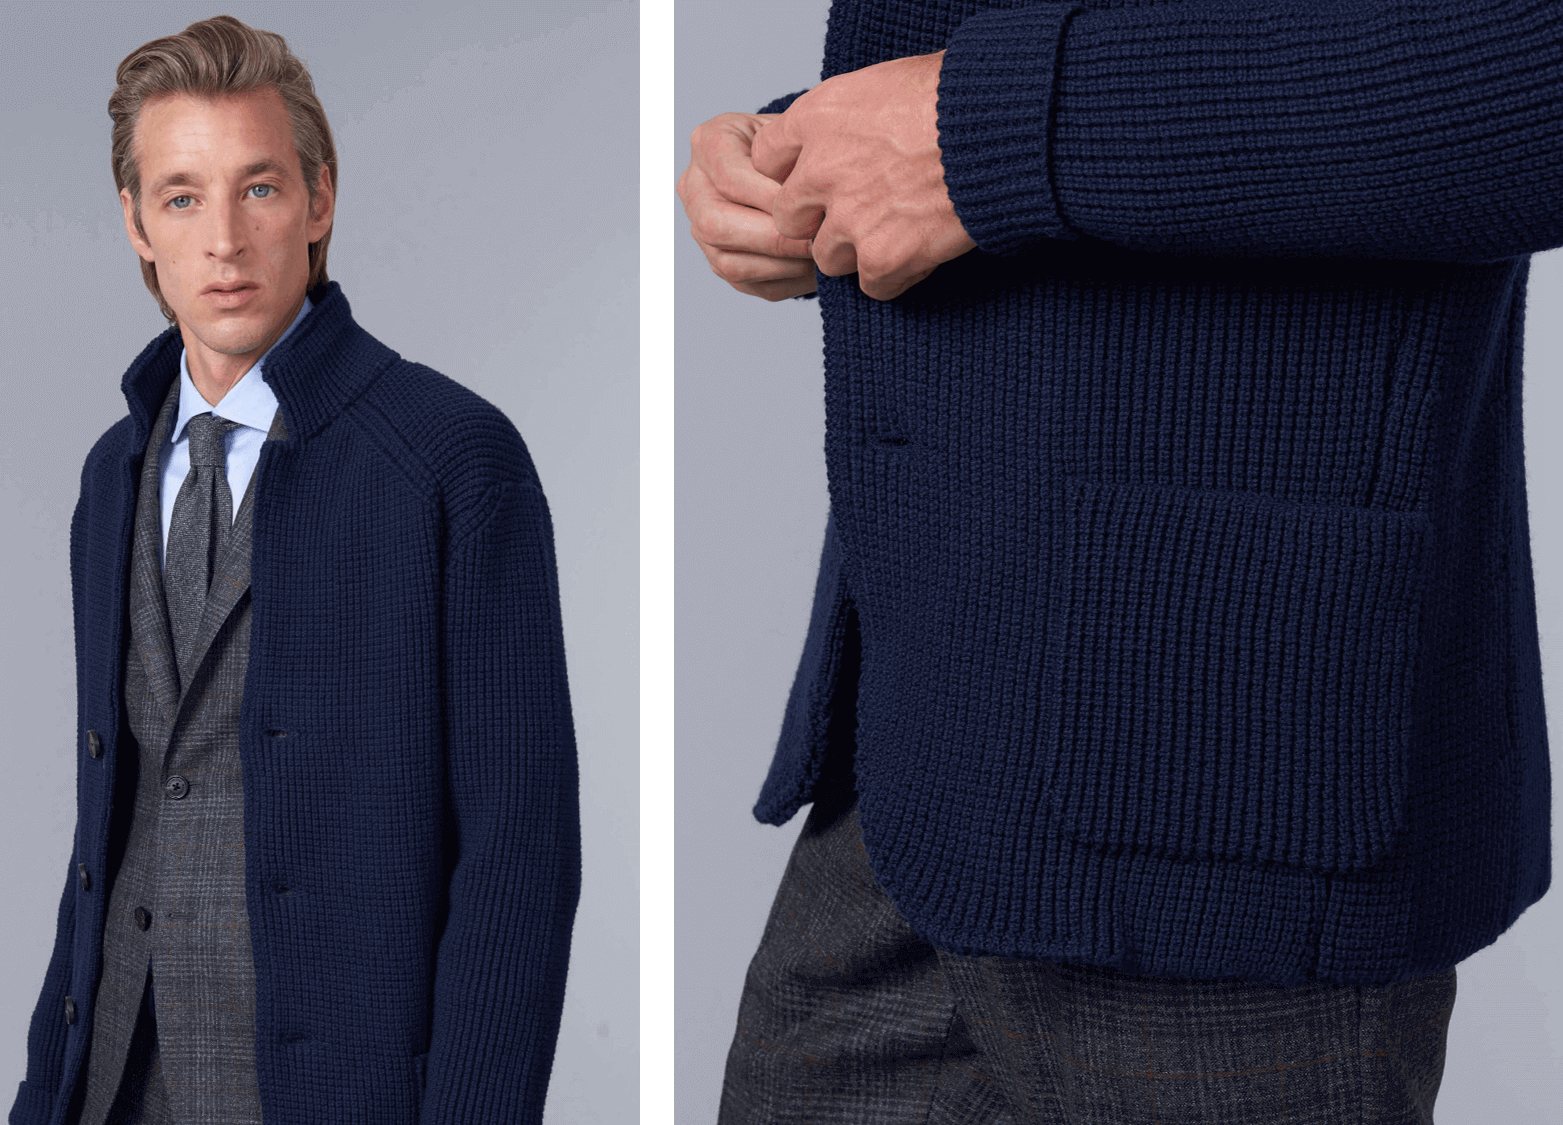 two photos of model wearing Baldassari knitted jacket in navy